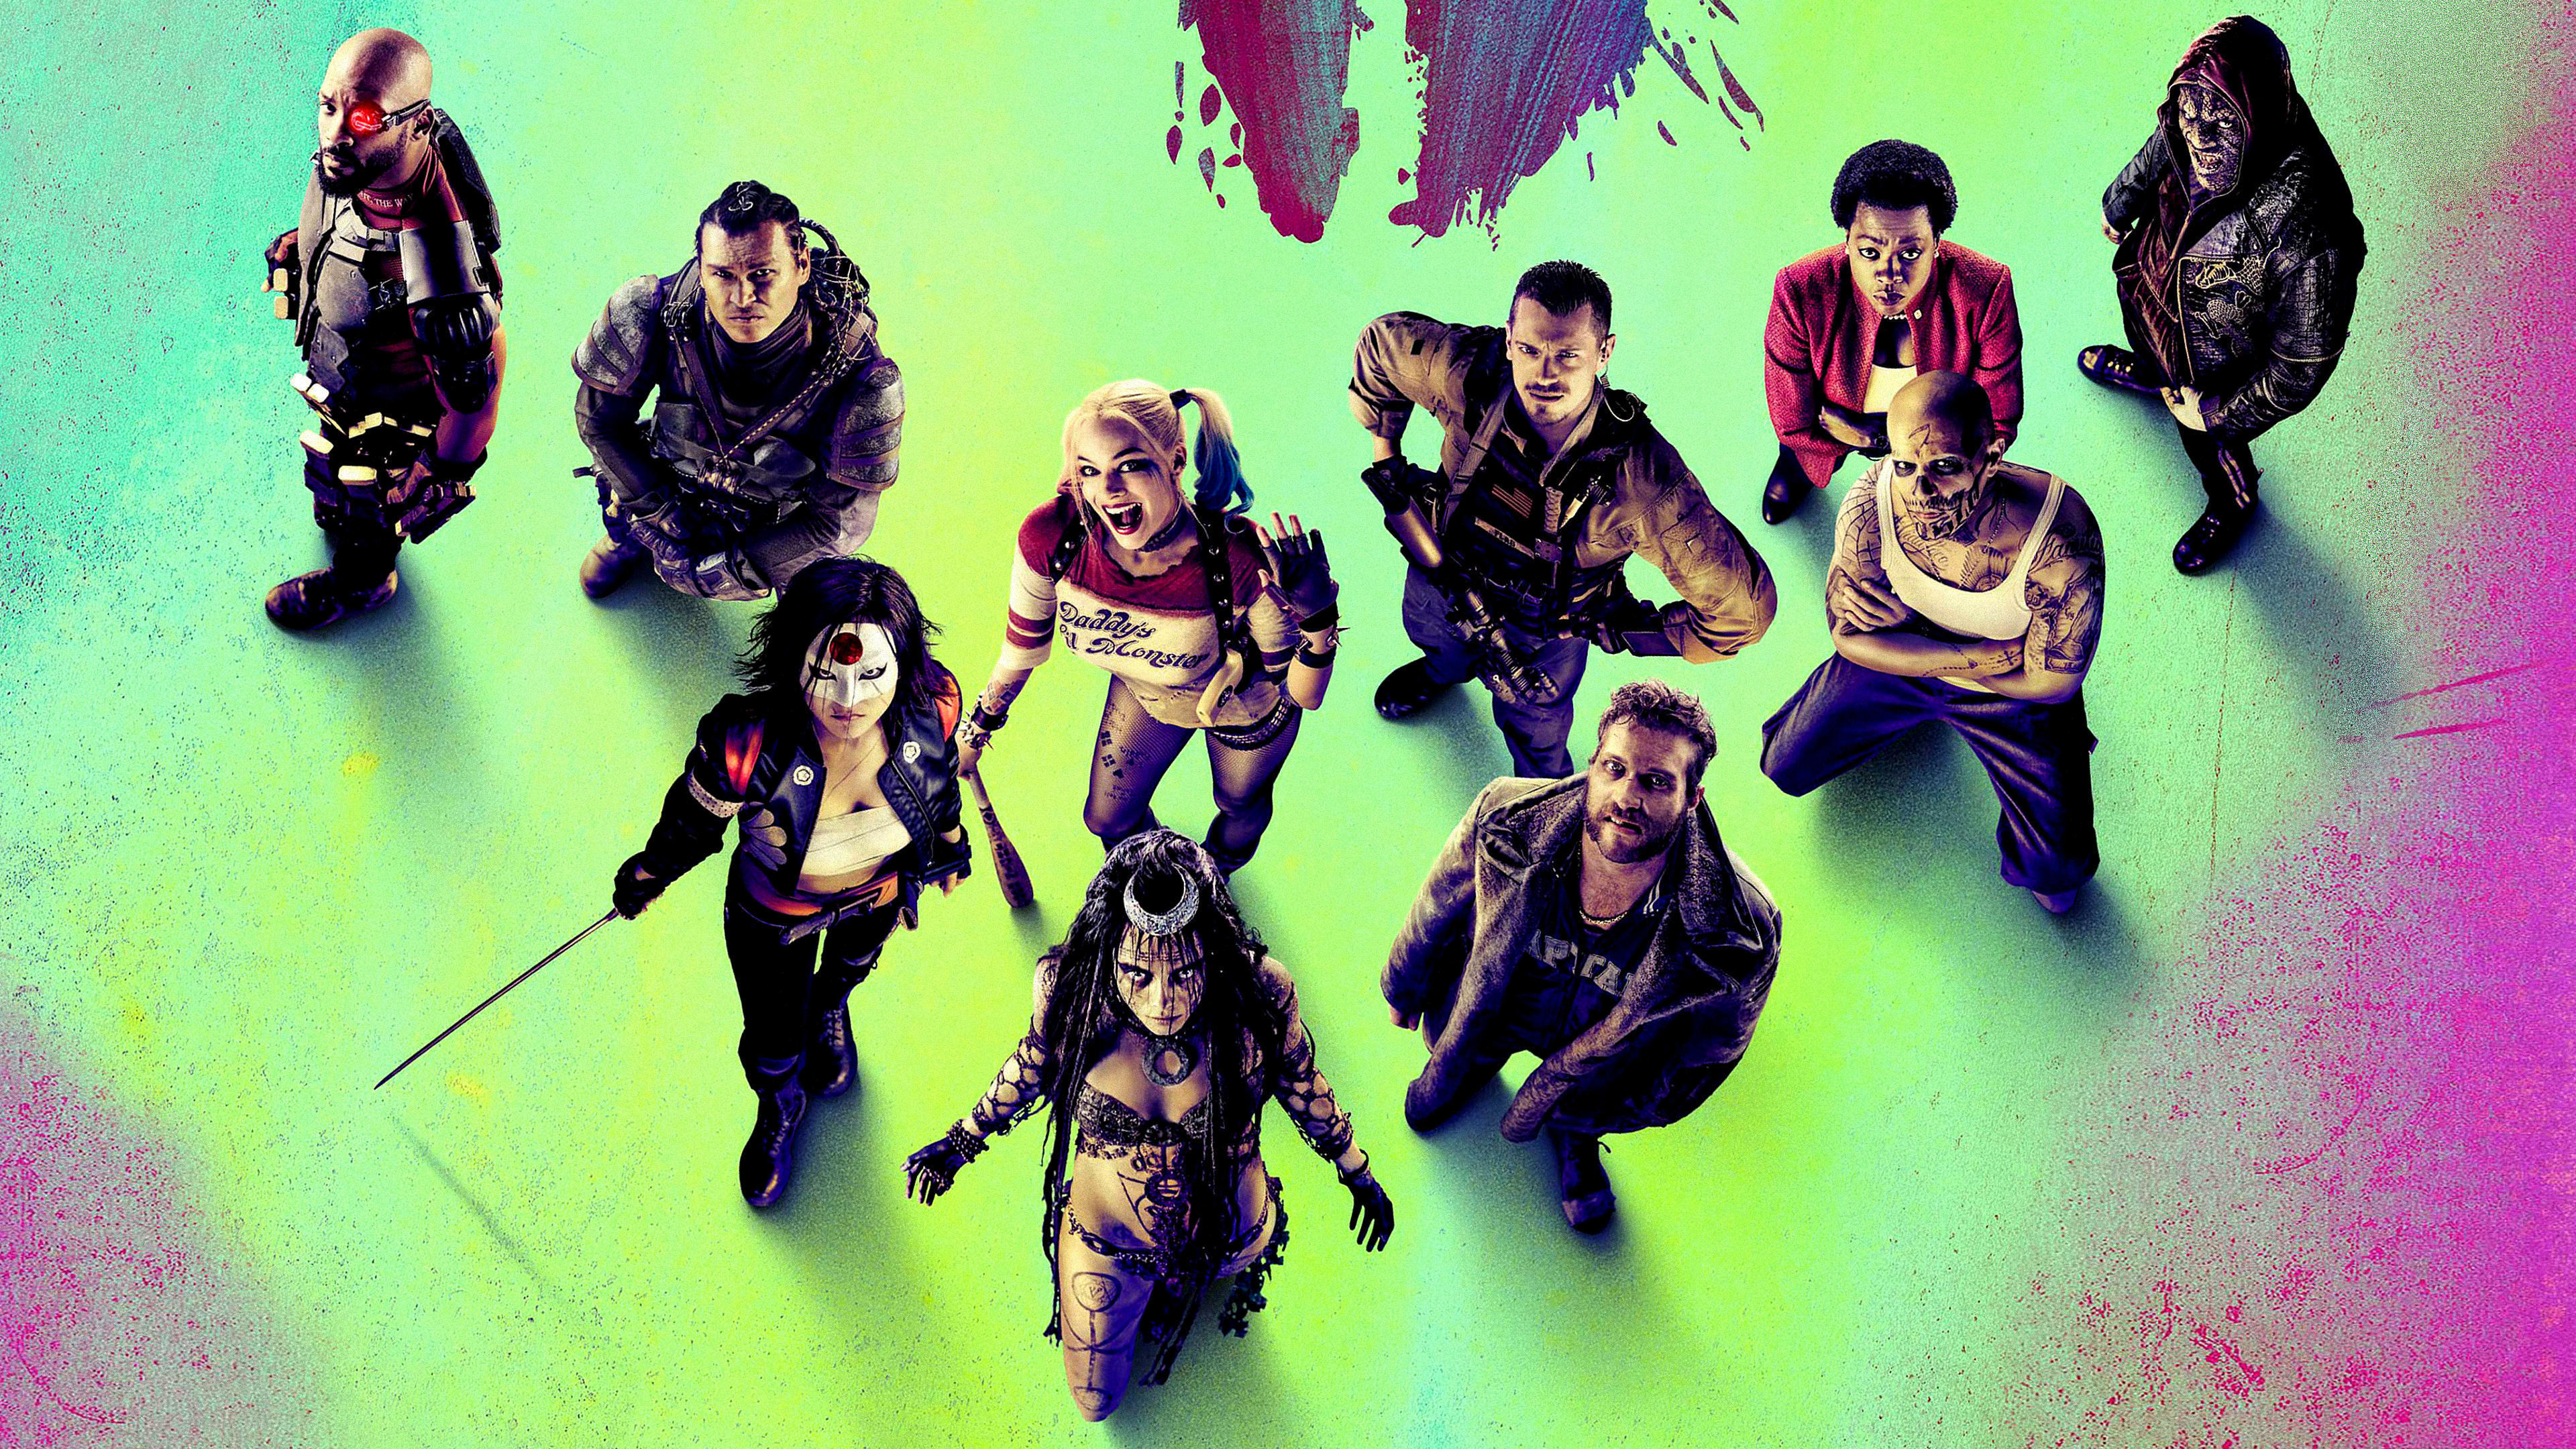 Suicide Squad HD Wallpapers, Pictures, Images